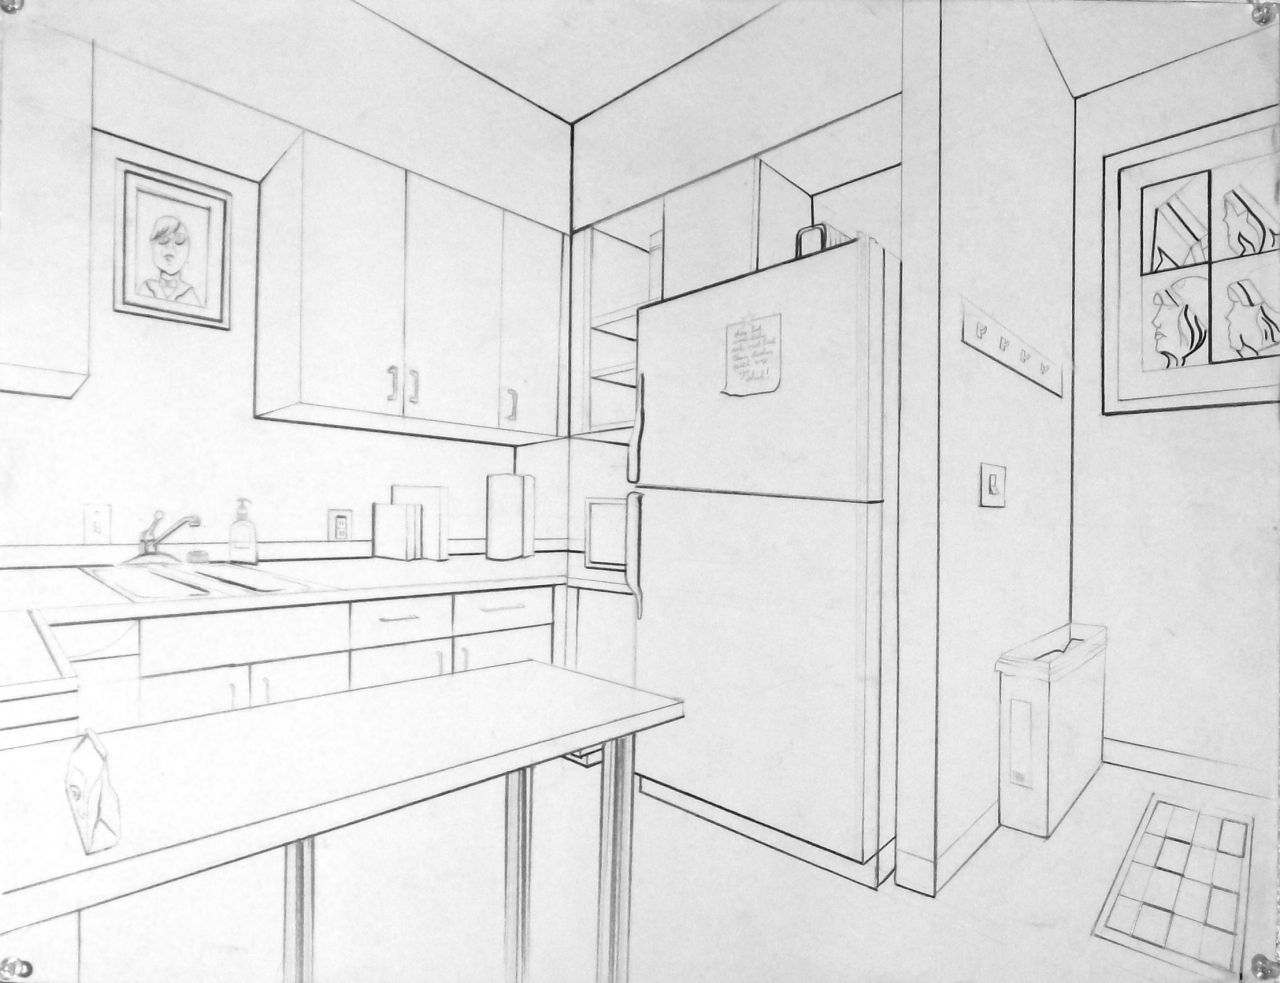 Interior Perspective Of A Kitchen Pencil Sketch